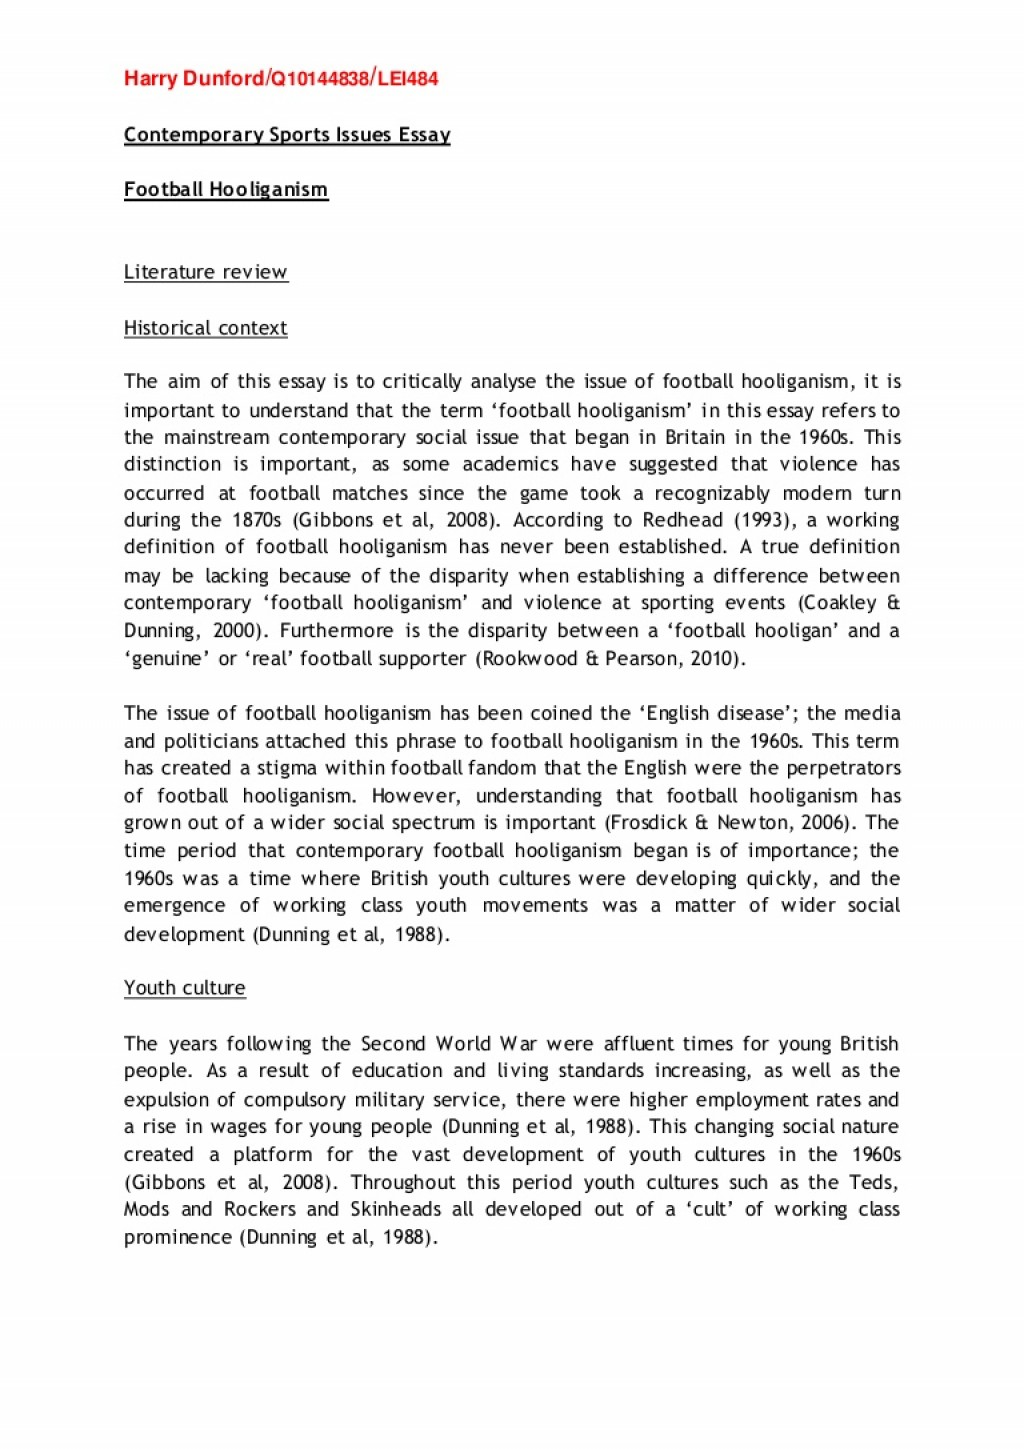 010 Lva1 App6892 Thumbnail Essay On Football Top Match For Class 7 Player Large